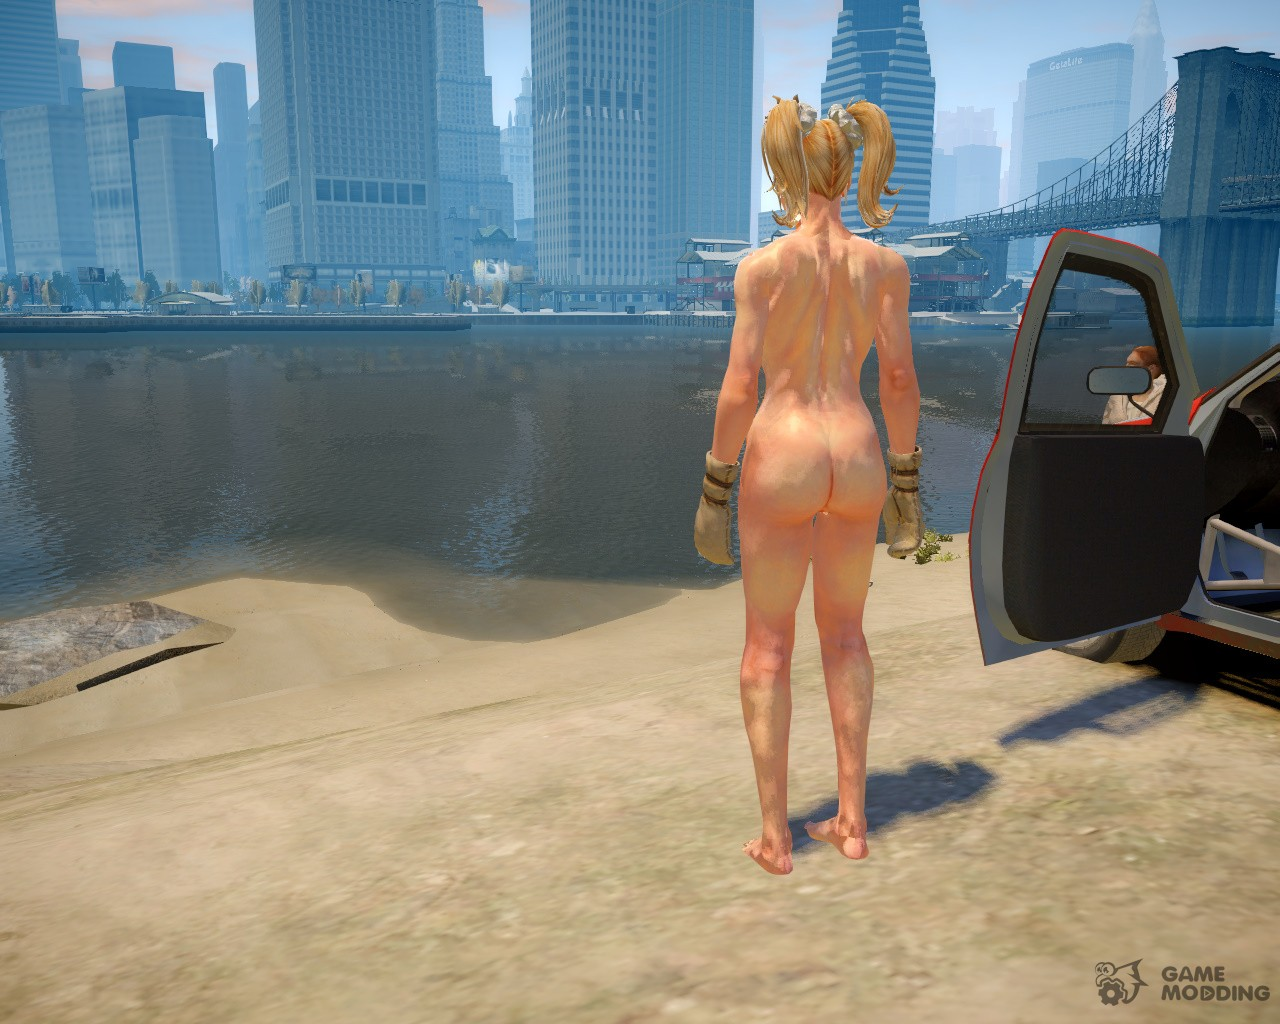 Gta4 nude boobs mod cartoon butt